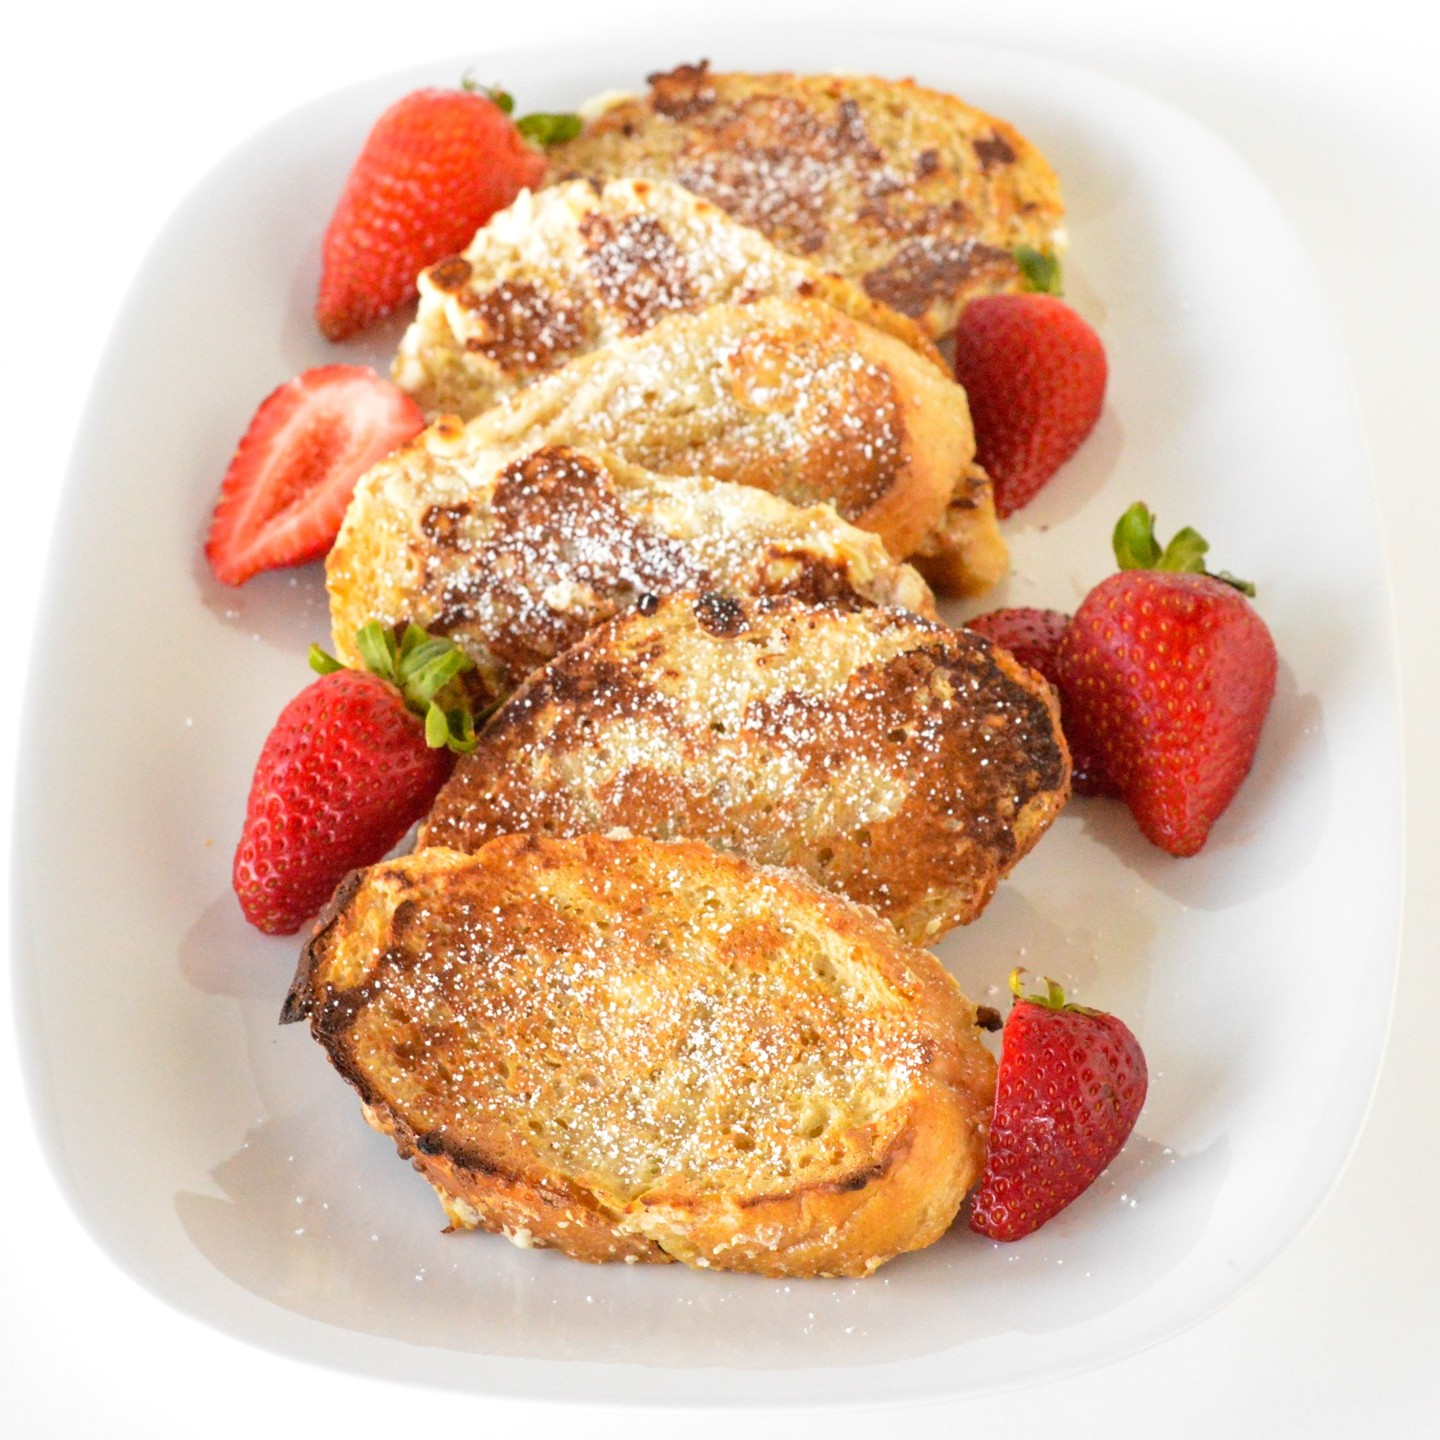 maple-cinnamon-baked-french-toast